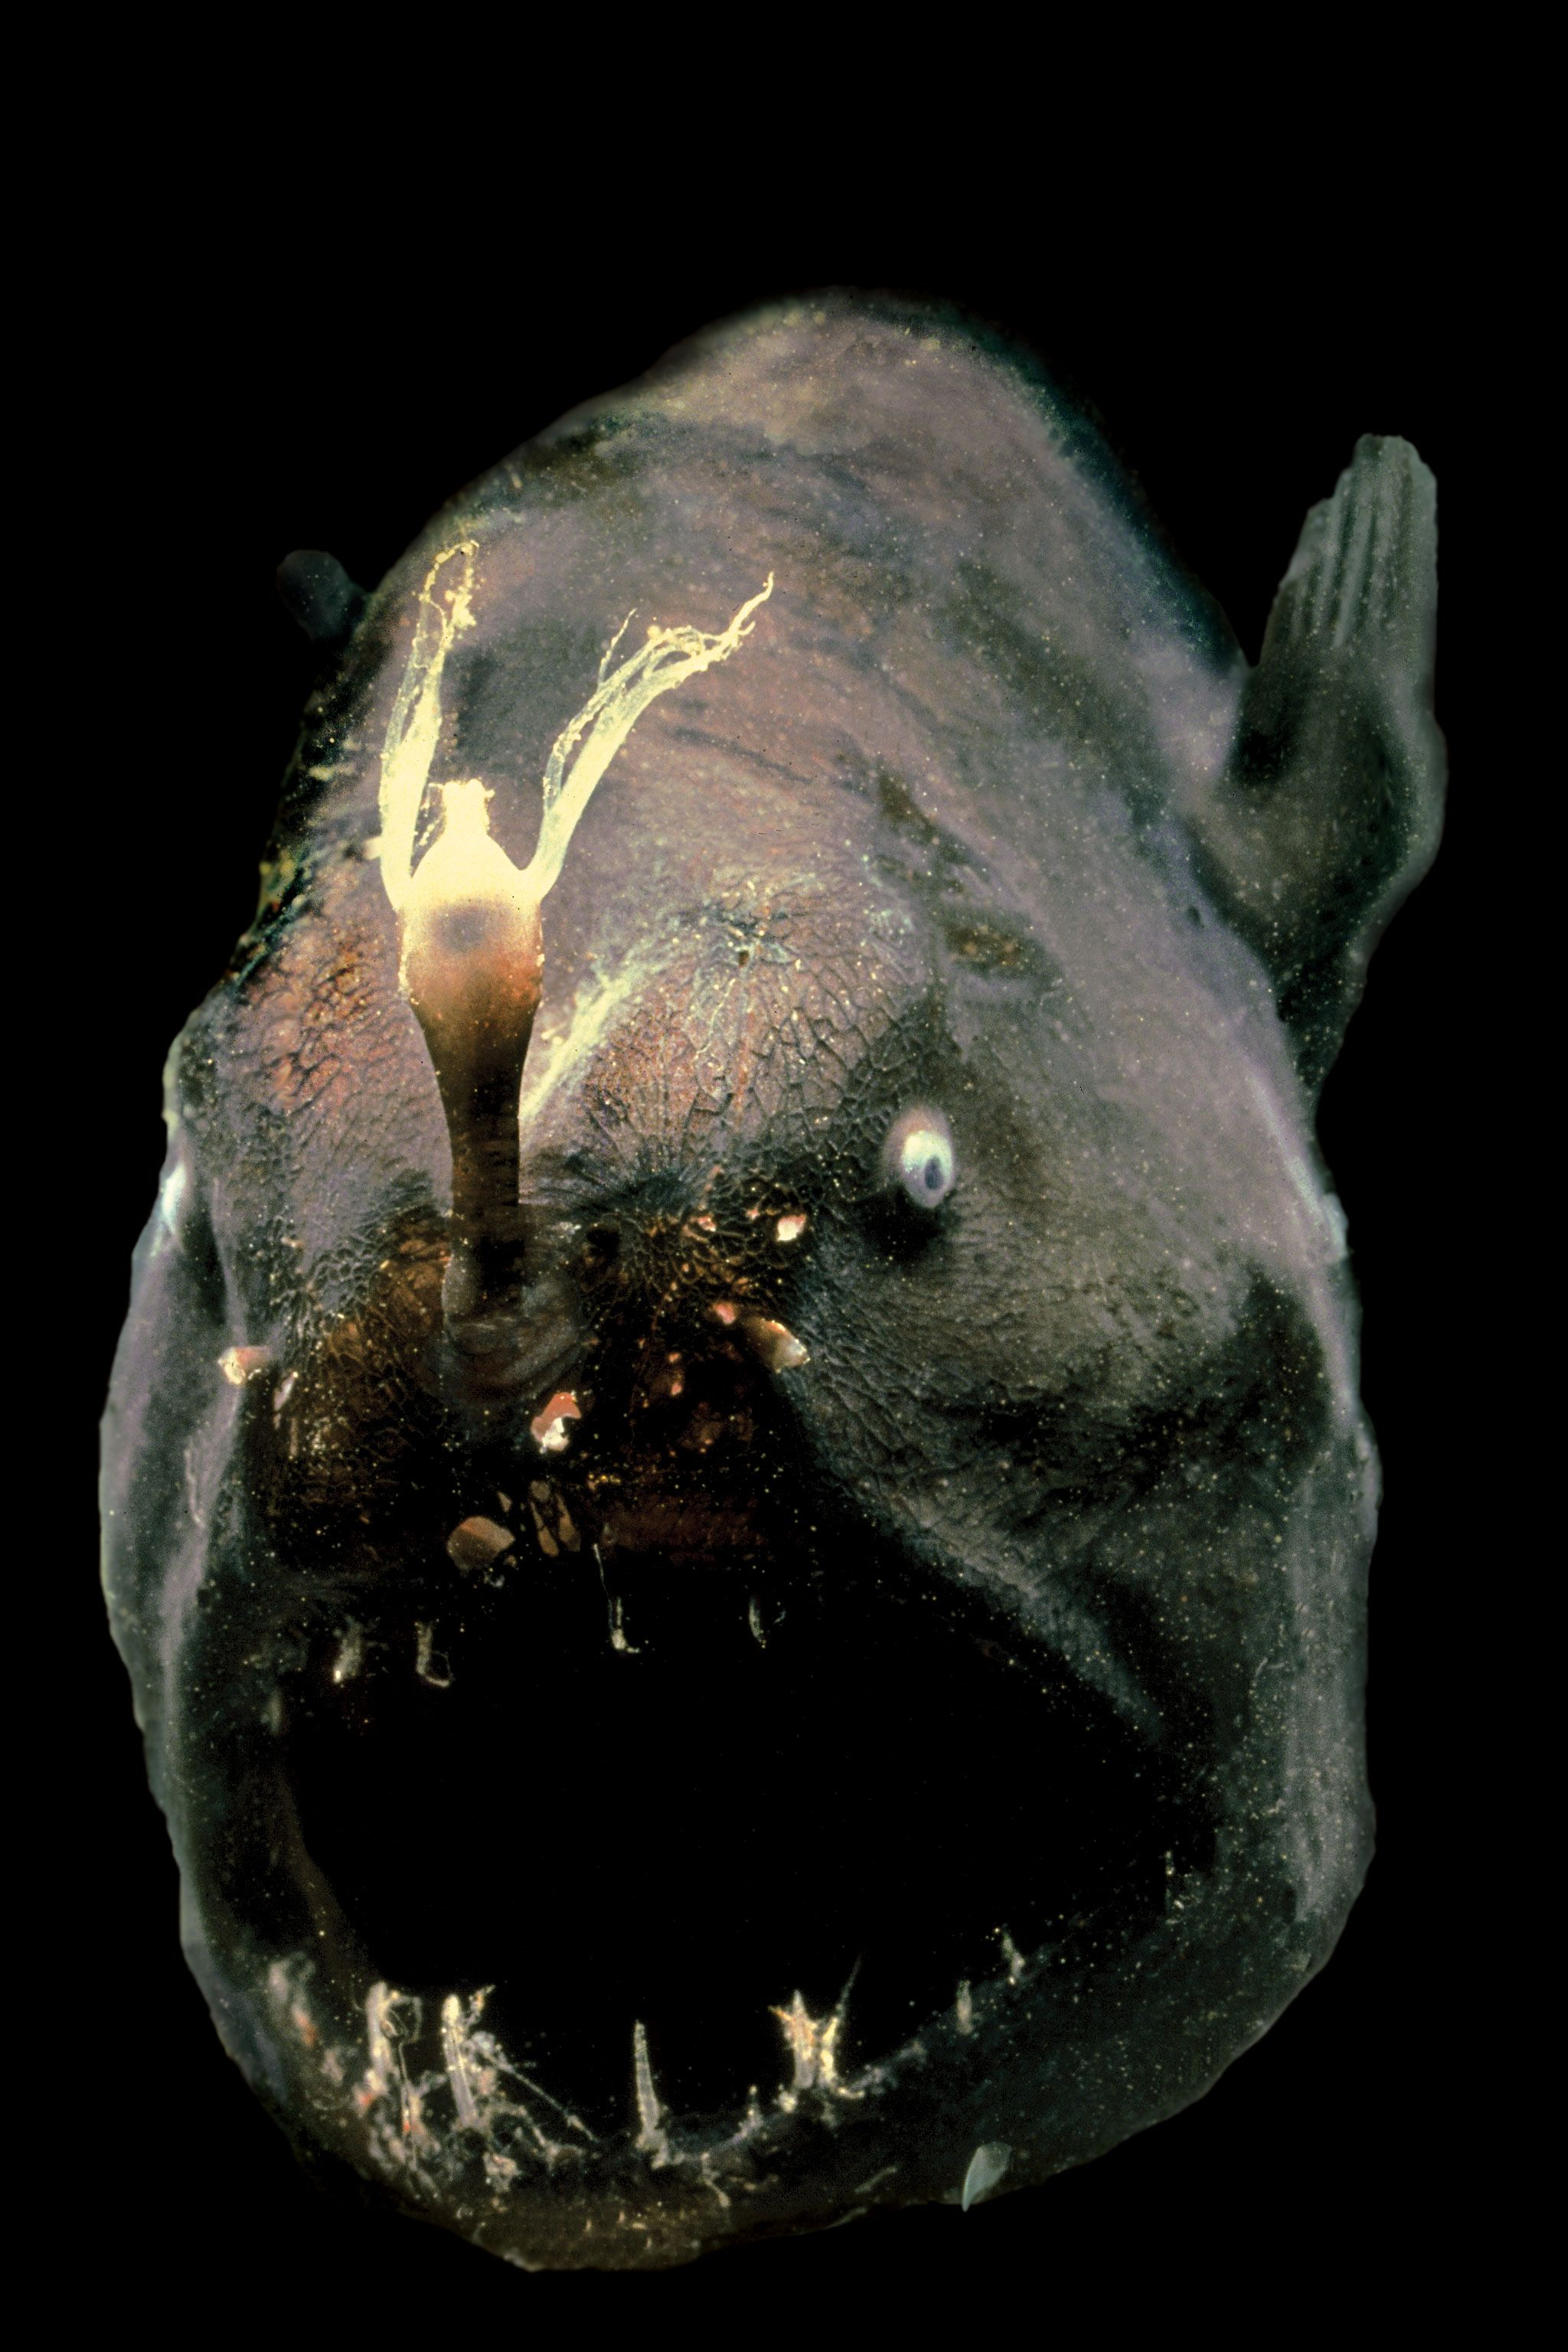 Angler the abyssal zone pinterest animal kingdom and animal qveer trynottodrown hook line and sinker in the dark depths of the ocean its difficult to find both food and mates publicscrutiny Images